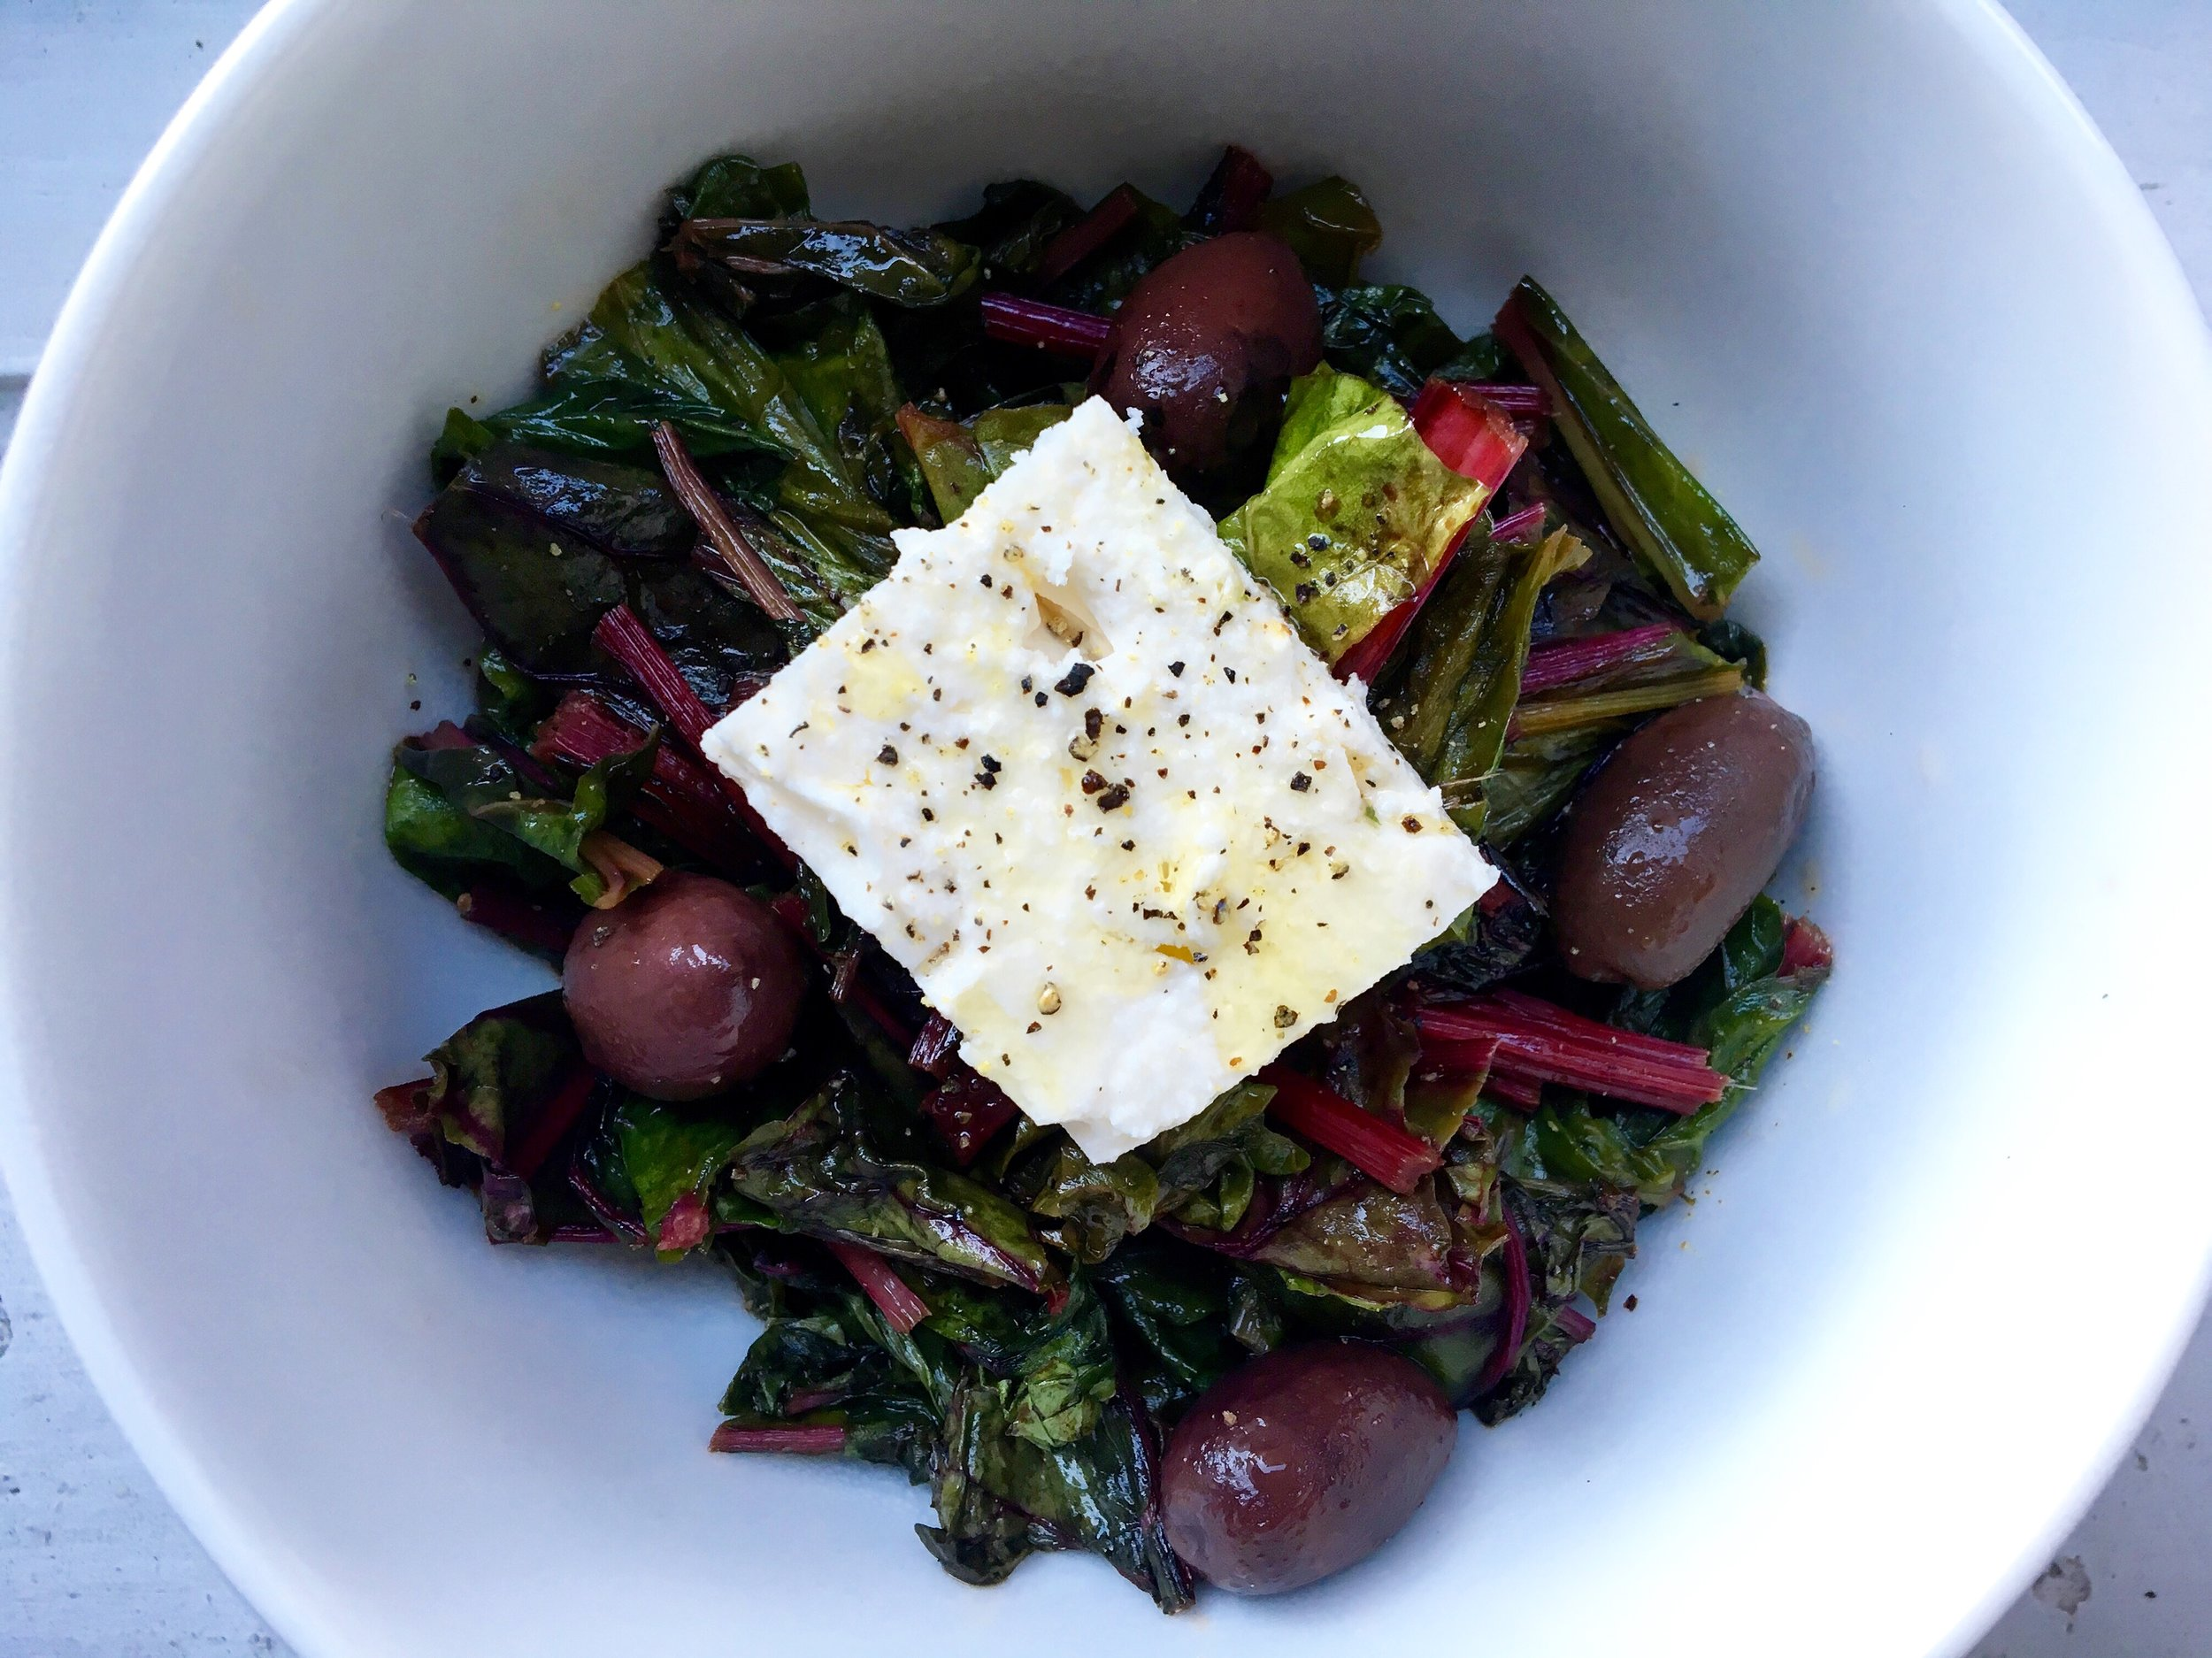 spicy swiss chard saute with red pepper flakes, garlic + olives (topped with a block of feta)